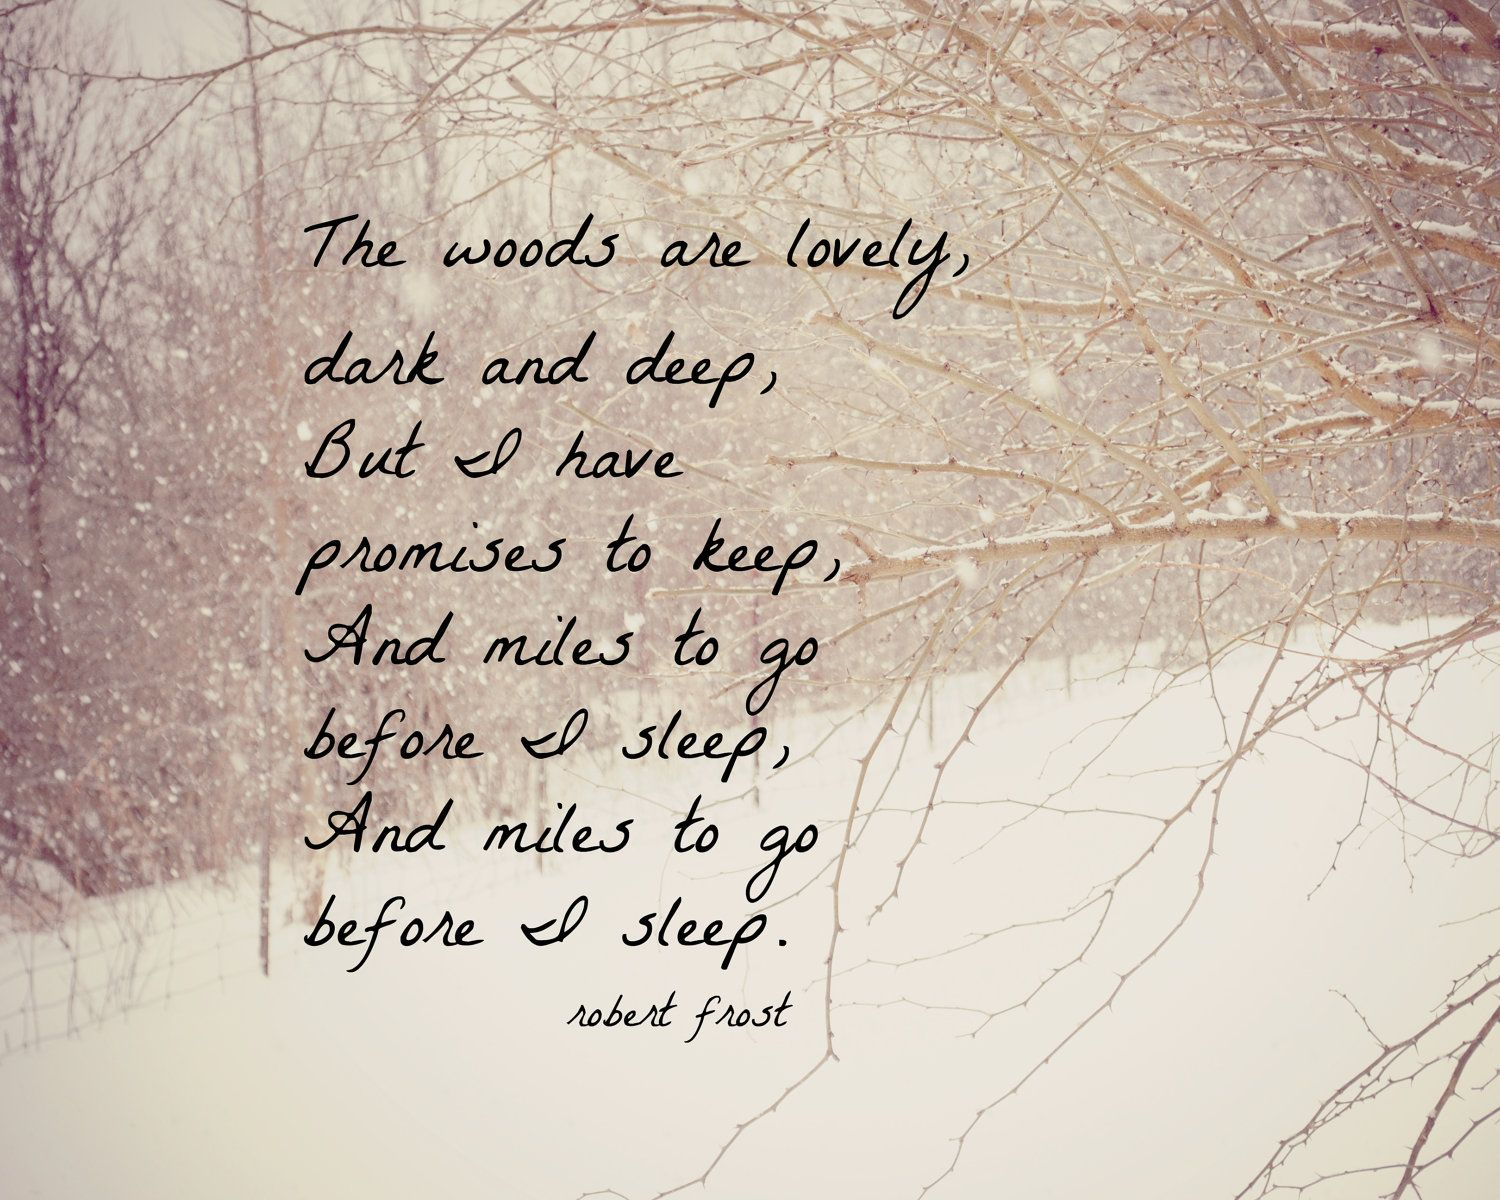 robert frost quote art miles to go winter photography. Black Bedroom Furniture Sets. Home Design Ideas